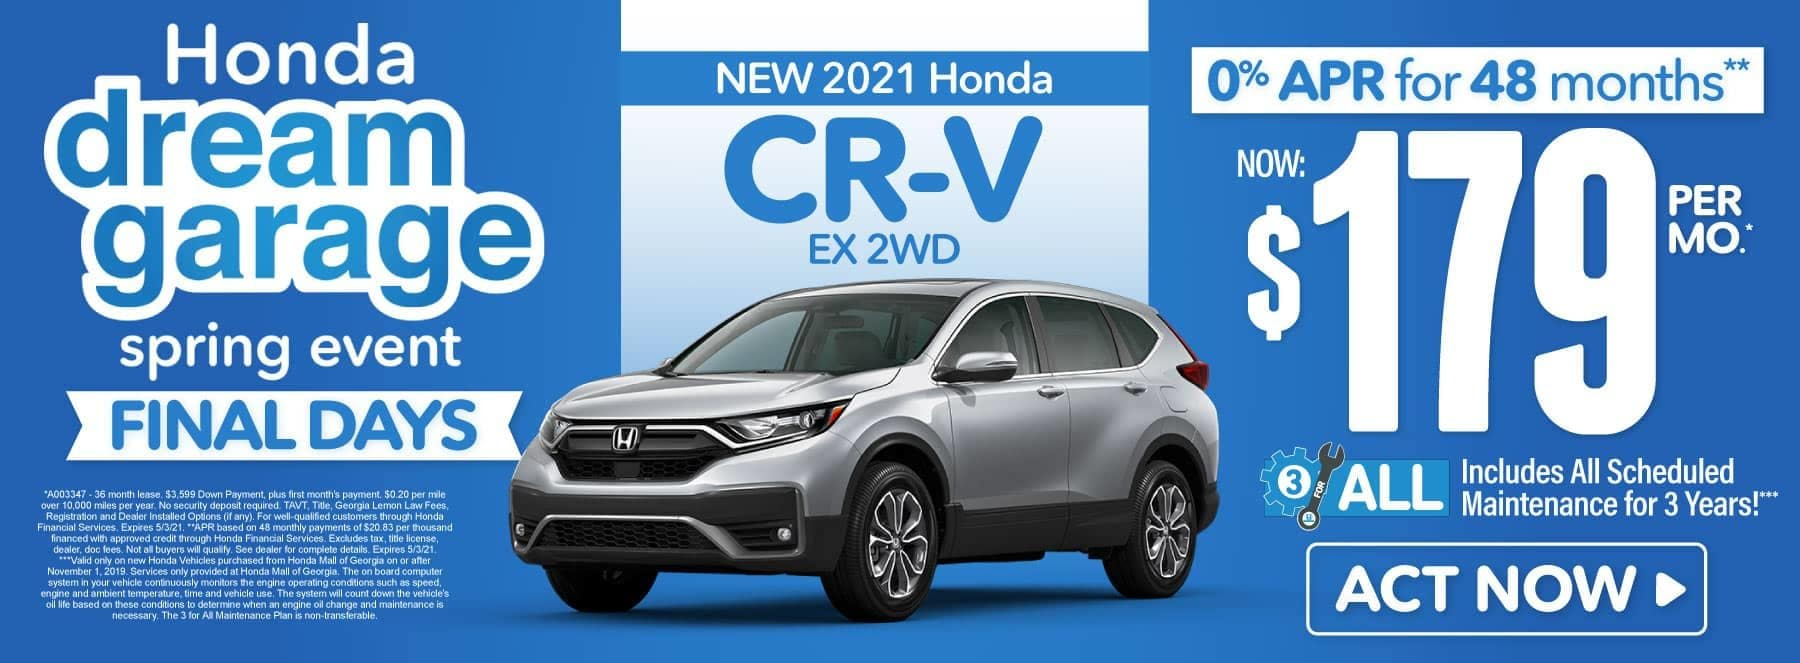 New 2021 Honda CR-V | Now $179 per month | Act Now